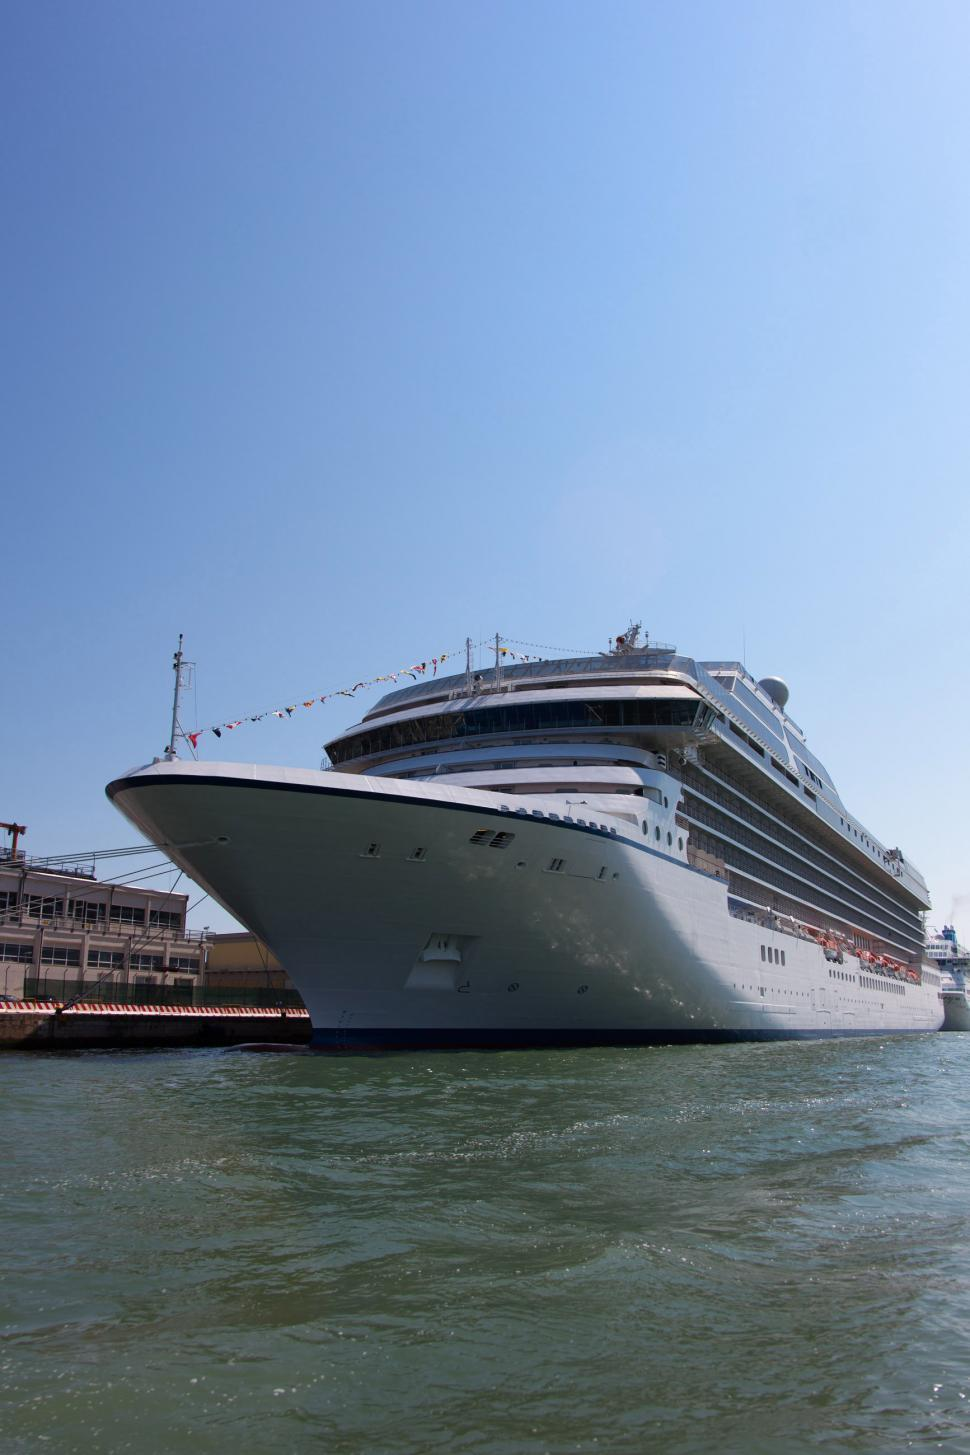 Download Free Stock HD Photo of Cruise ship in port - side view Online